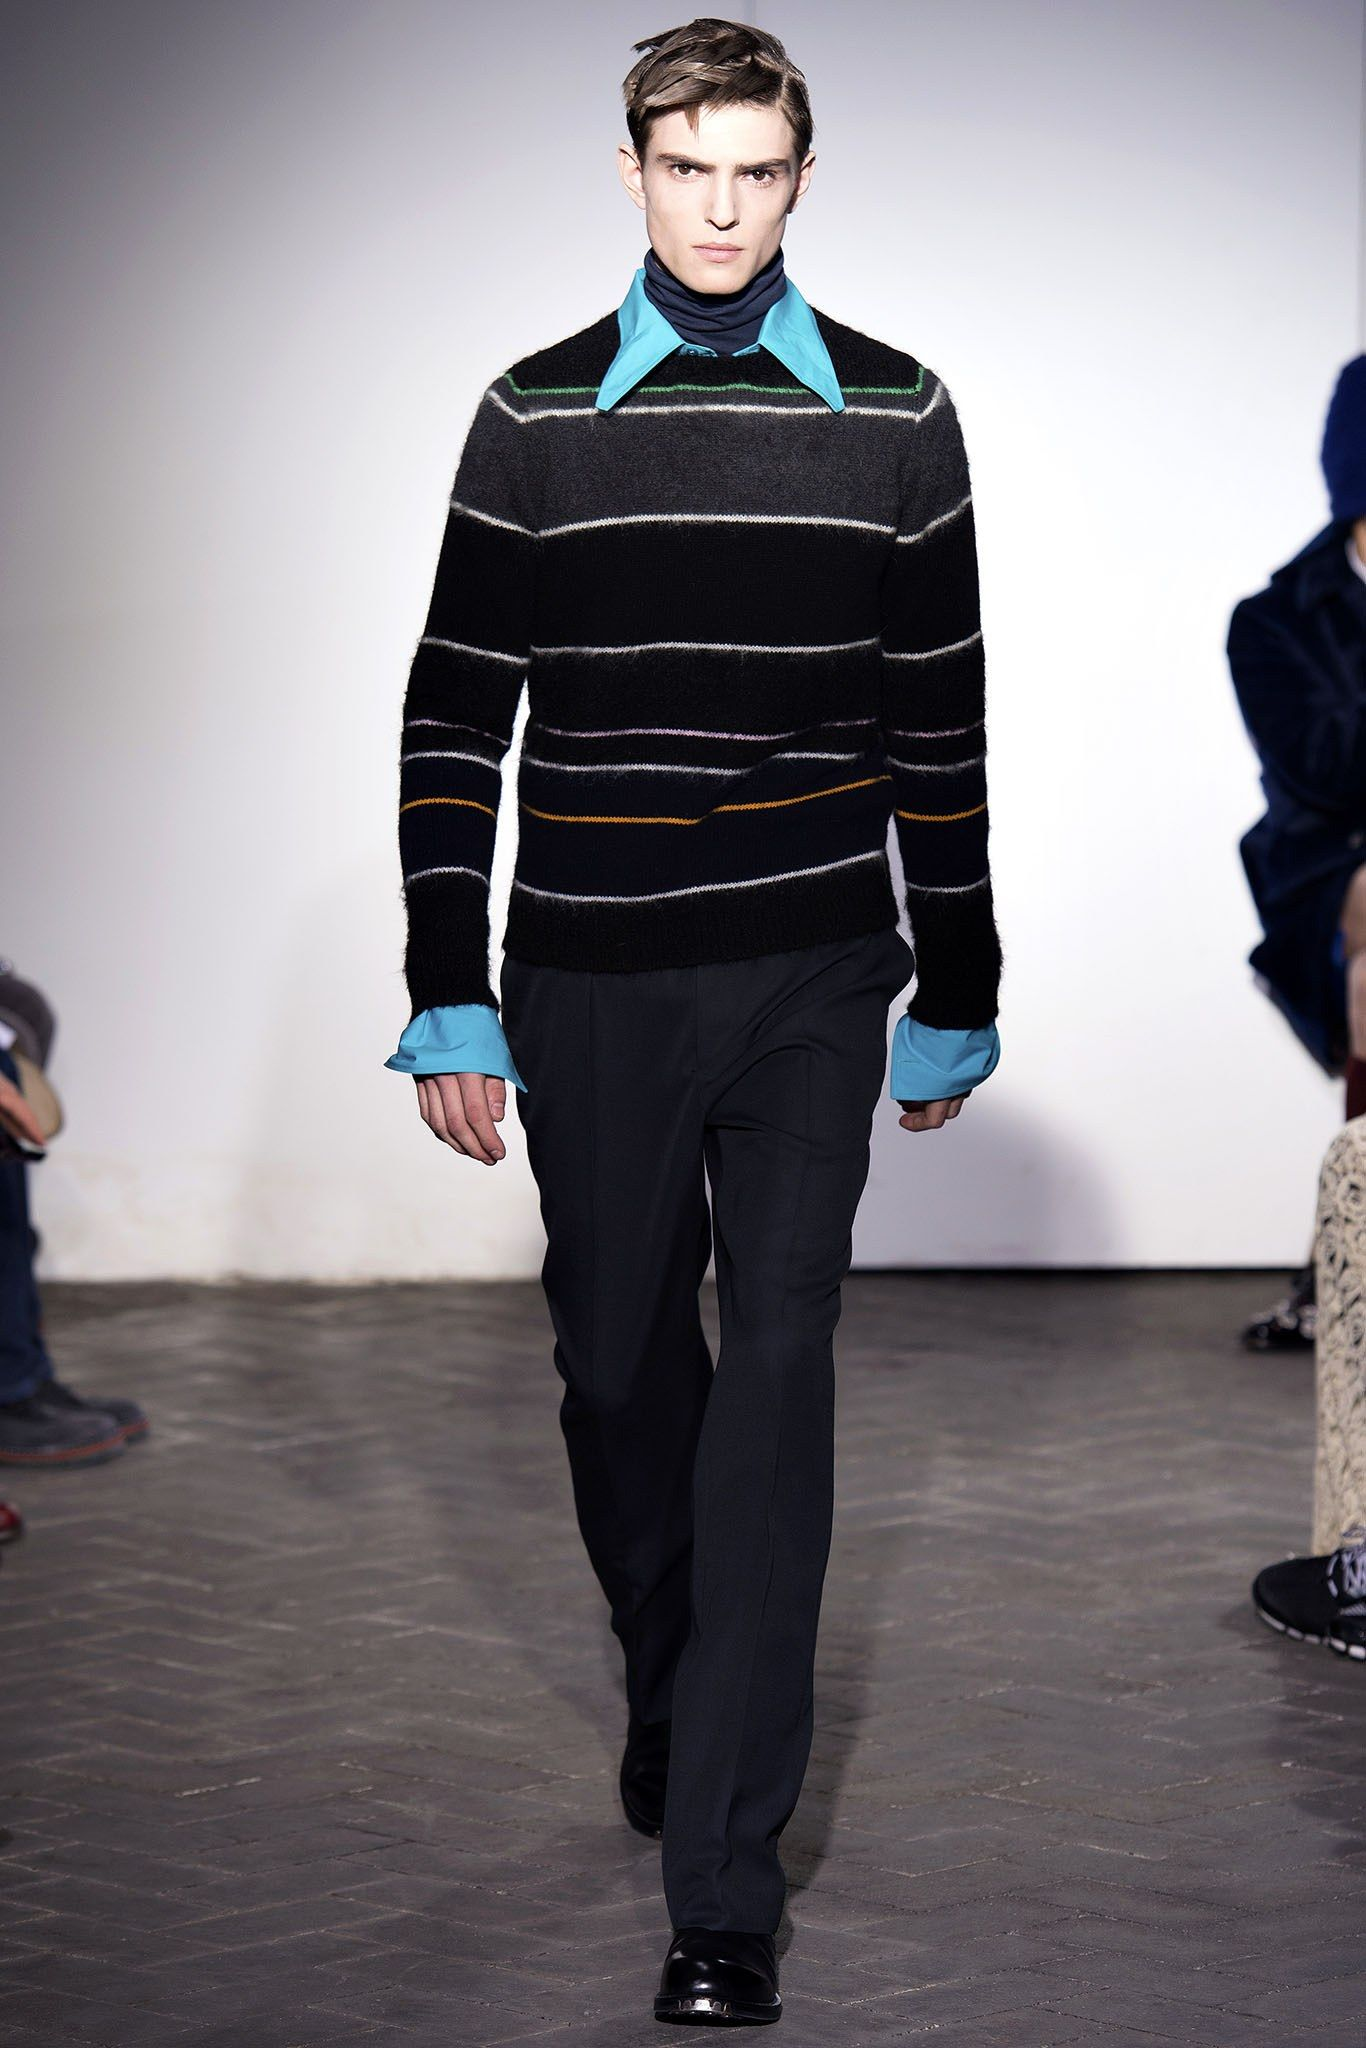 Raf Simons Fall 2013 Menswear Collection Photos - Vogue